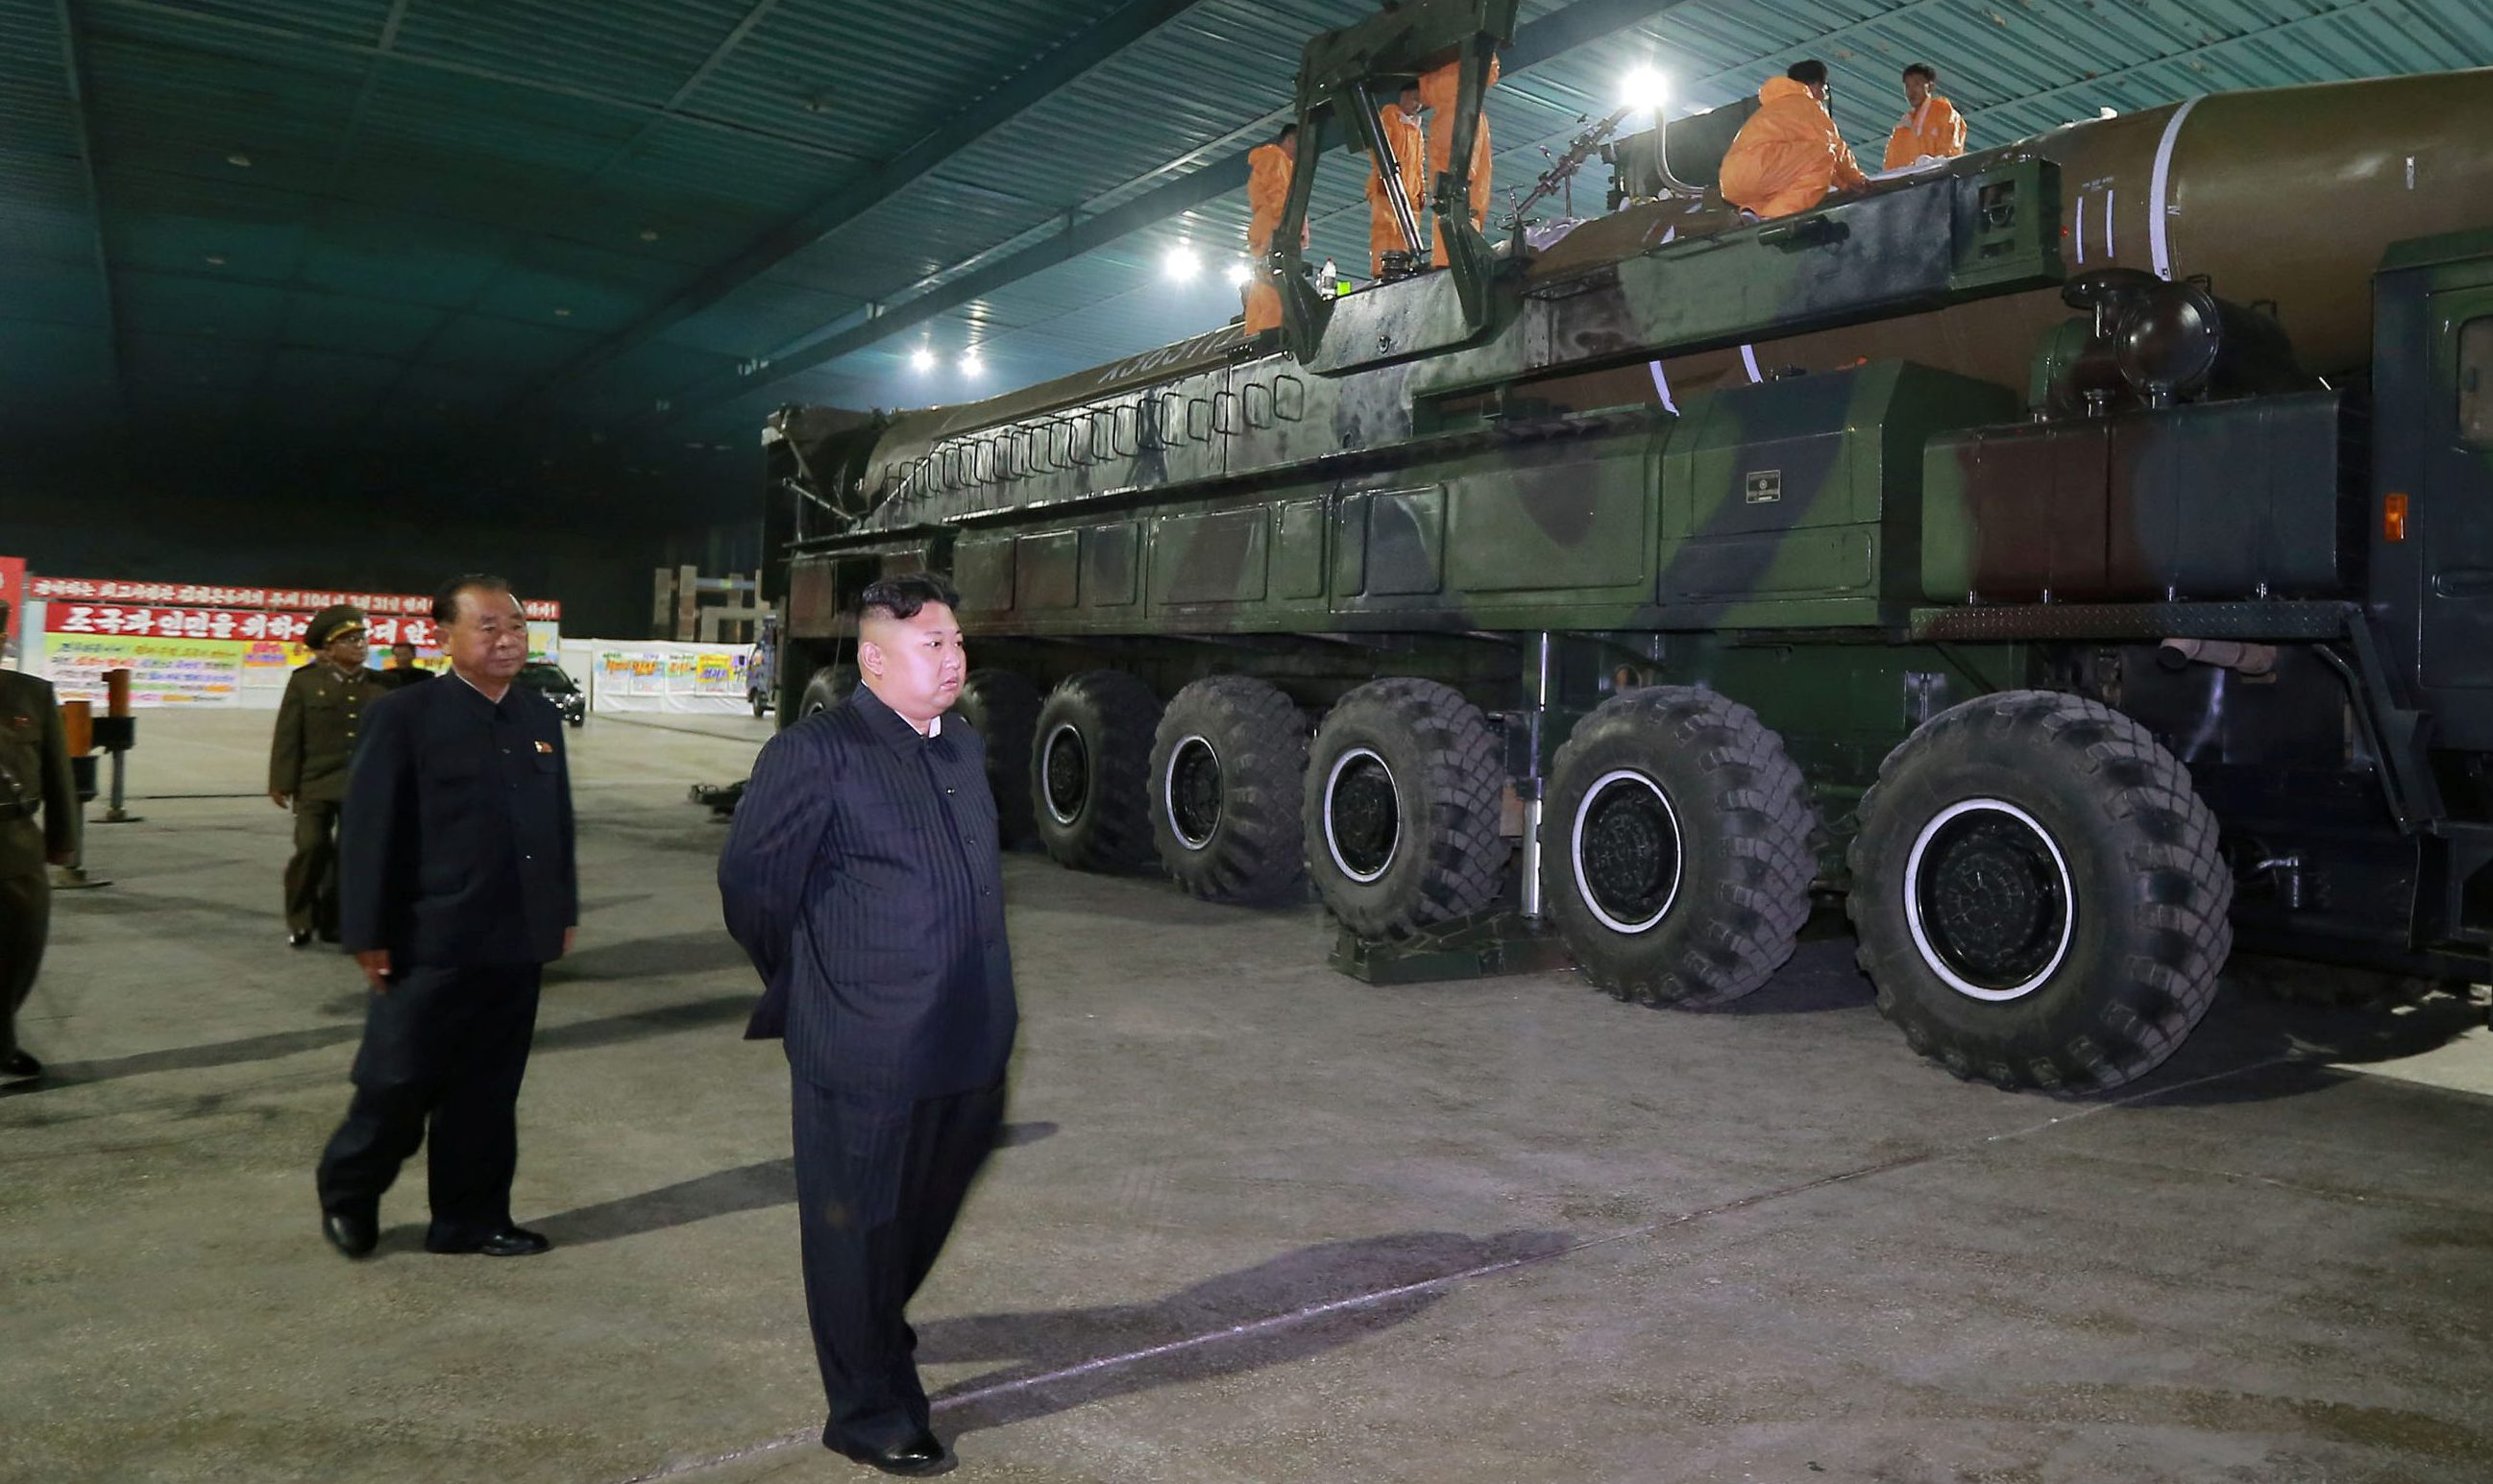 North Korean leader Kim Jong Un inspects the intercontinental ballistic missile Hwasong-14 in this undated photo released by North Korea's Korean Central News Agency (